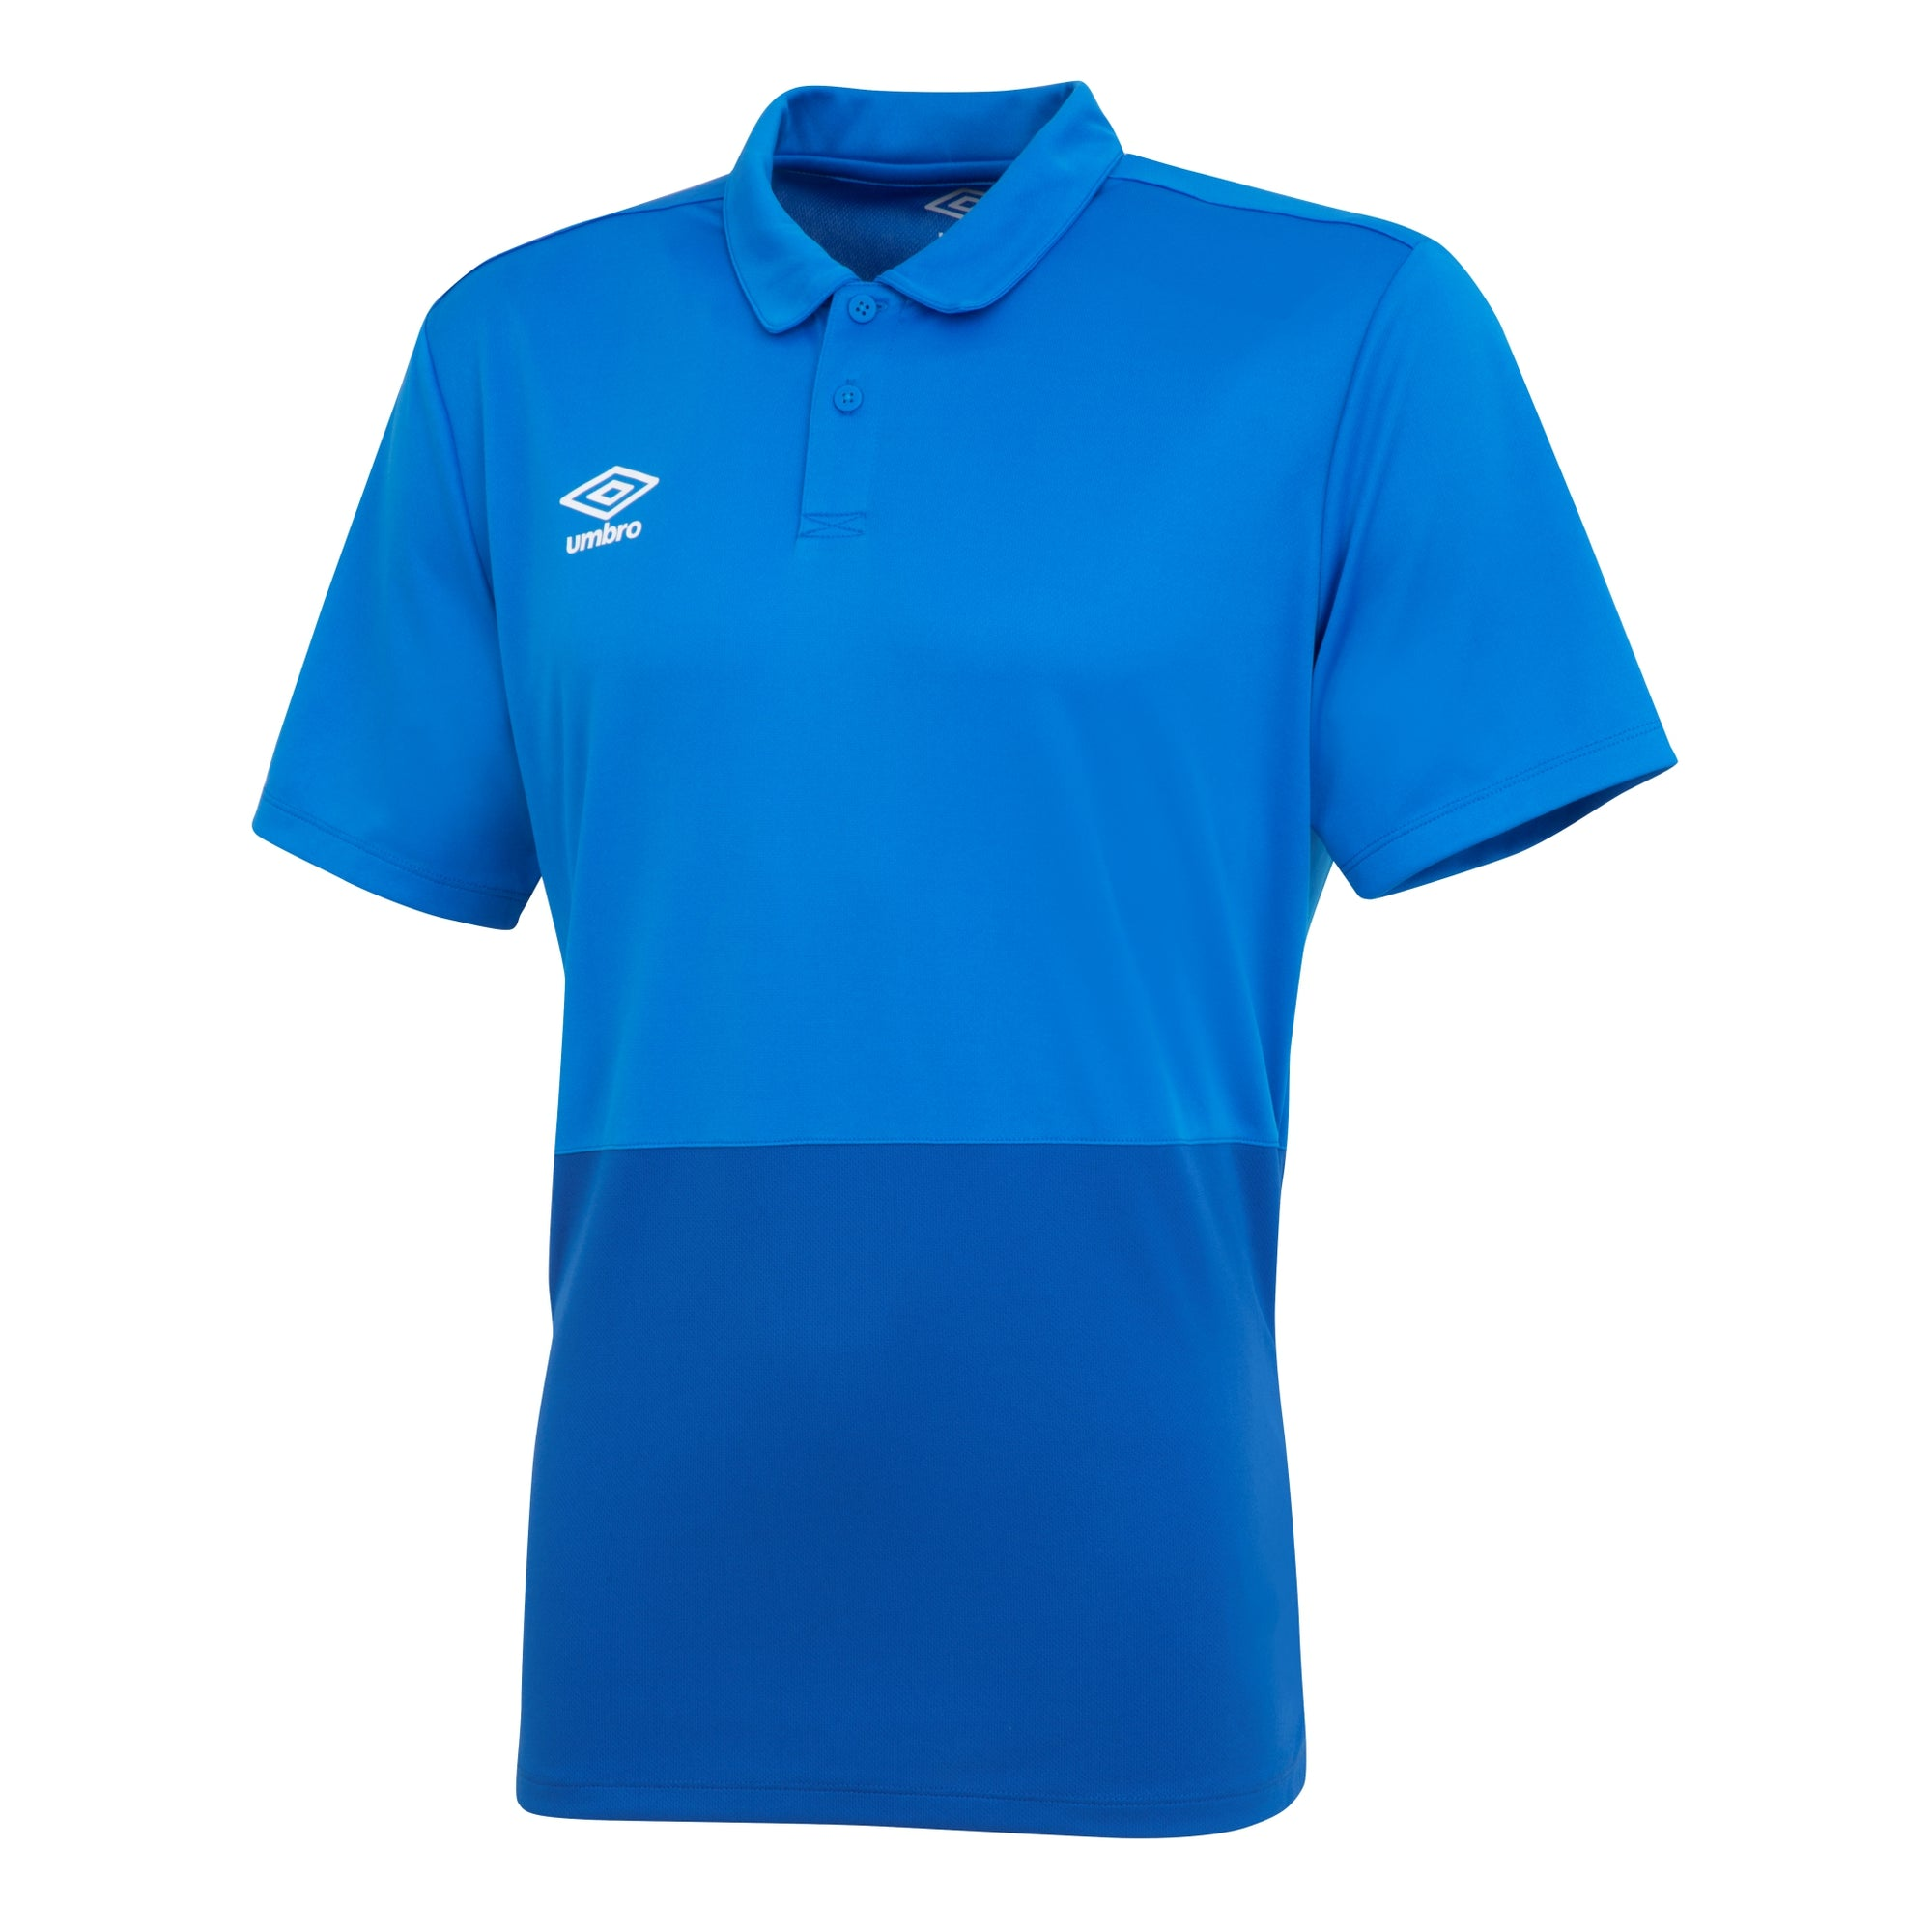 Umbro Poly Polo - Royal/French Blue/White